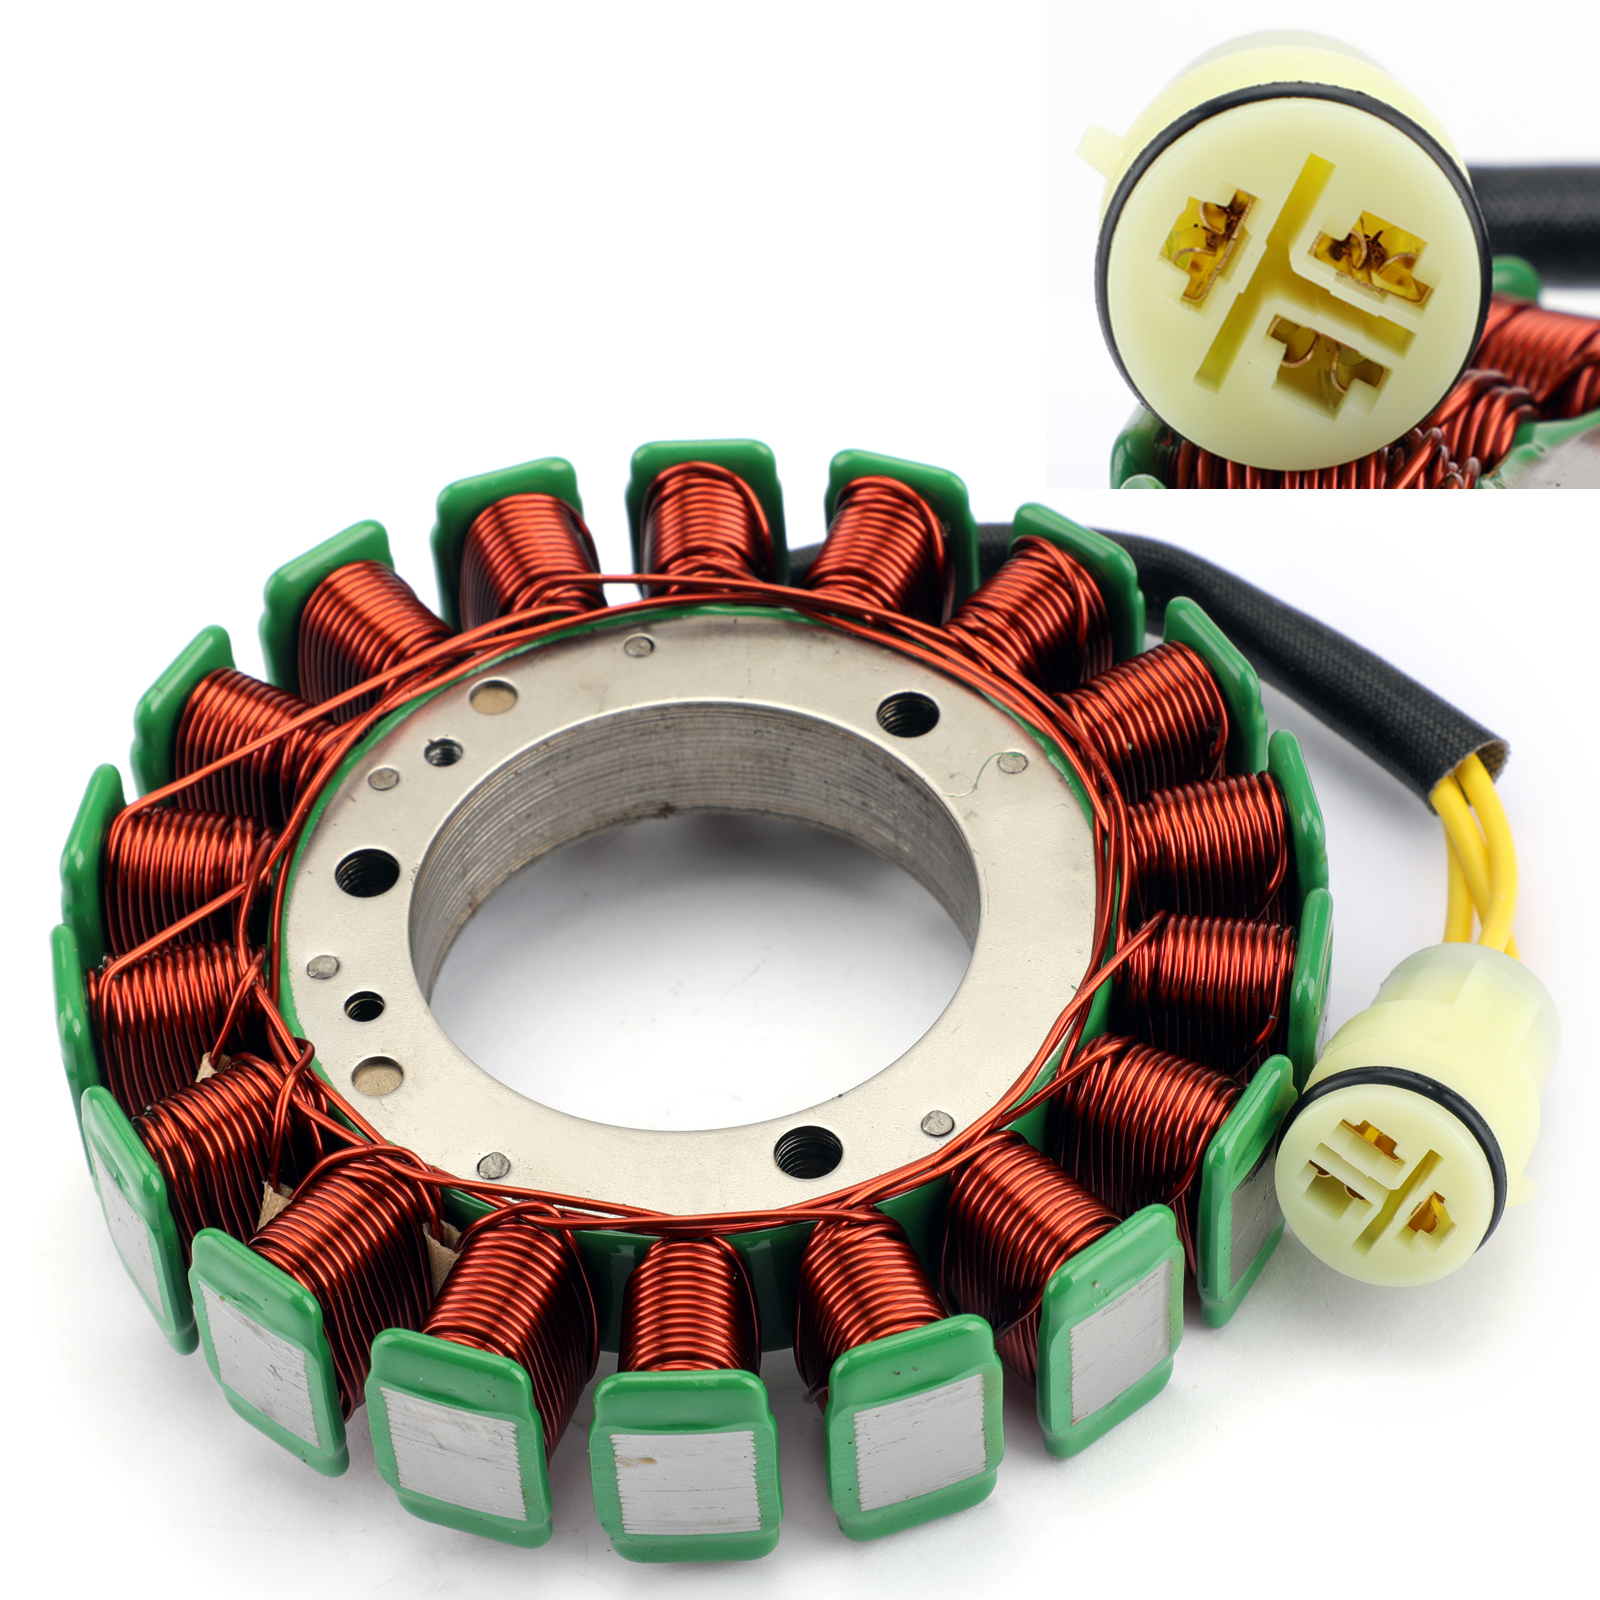 Outboard Stator Battery Charging Coil 18 Poles For Suzuki DF60 DF70 1998-2009 T1